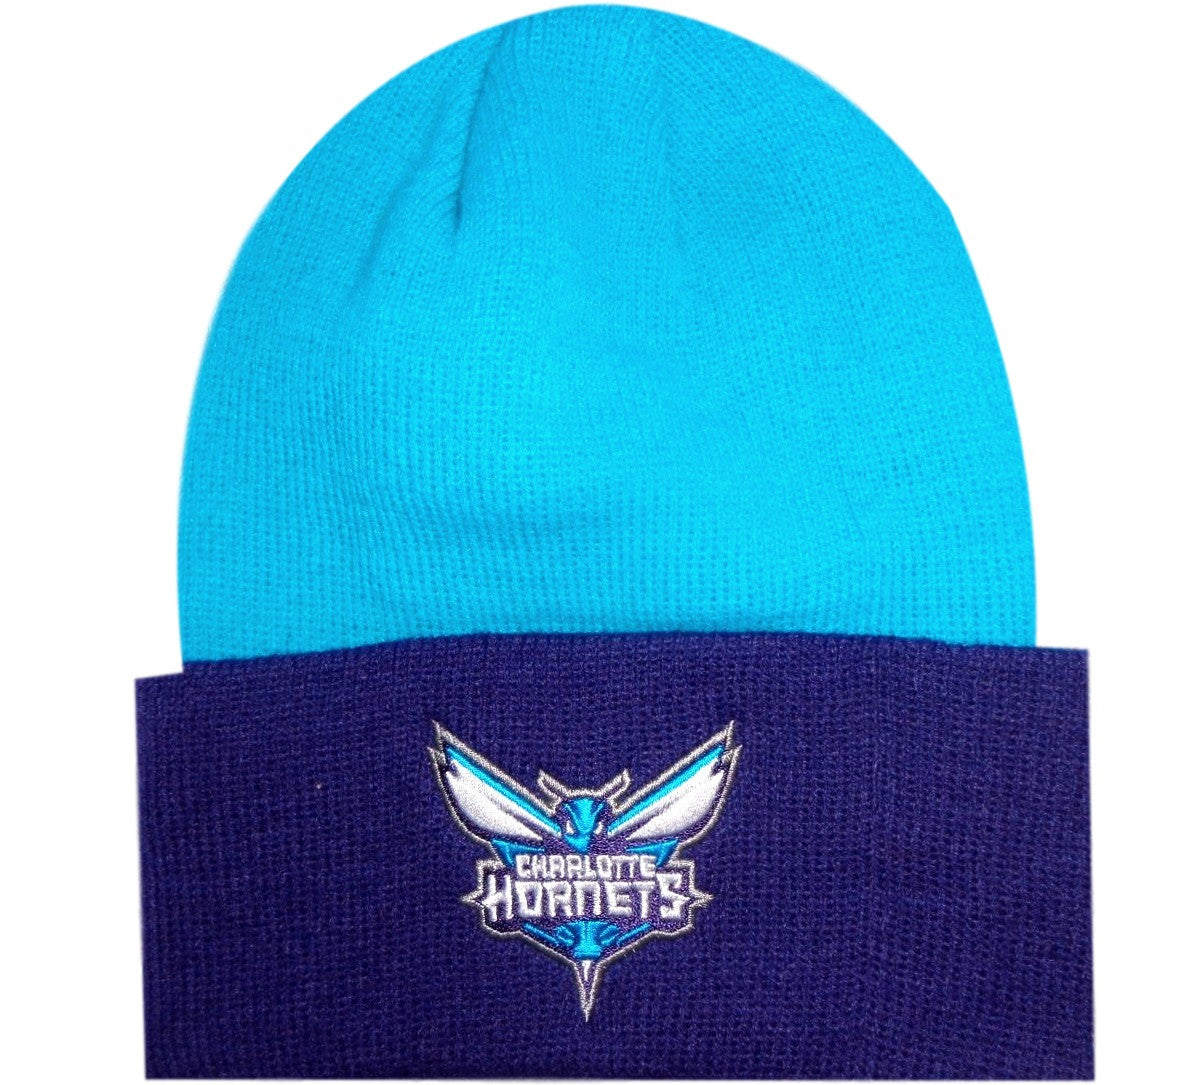 Hornets Retro NBA Knit Beanie